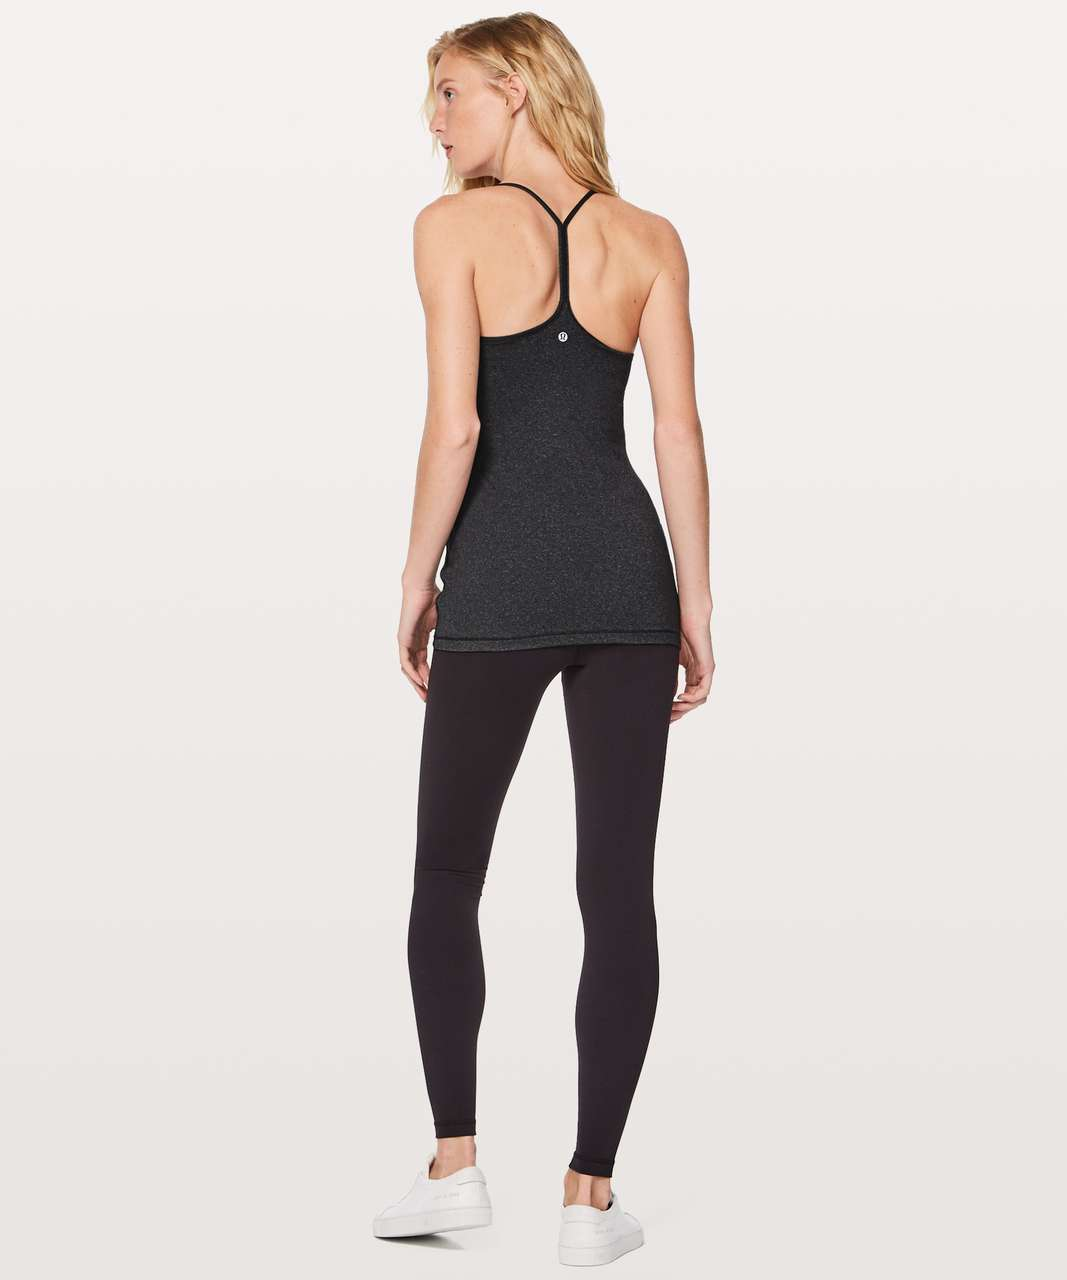 Lululemon Power Pose Tank *Light Support For A/B Cup - Heathered Black